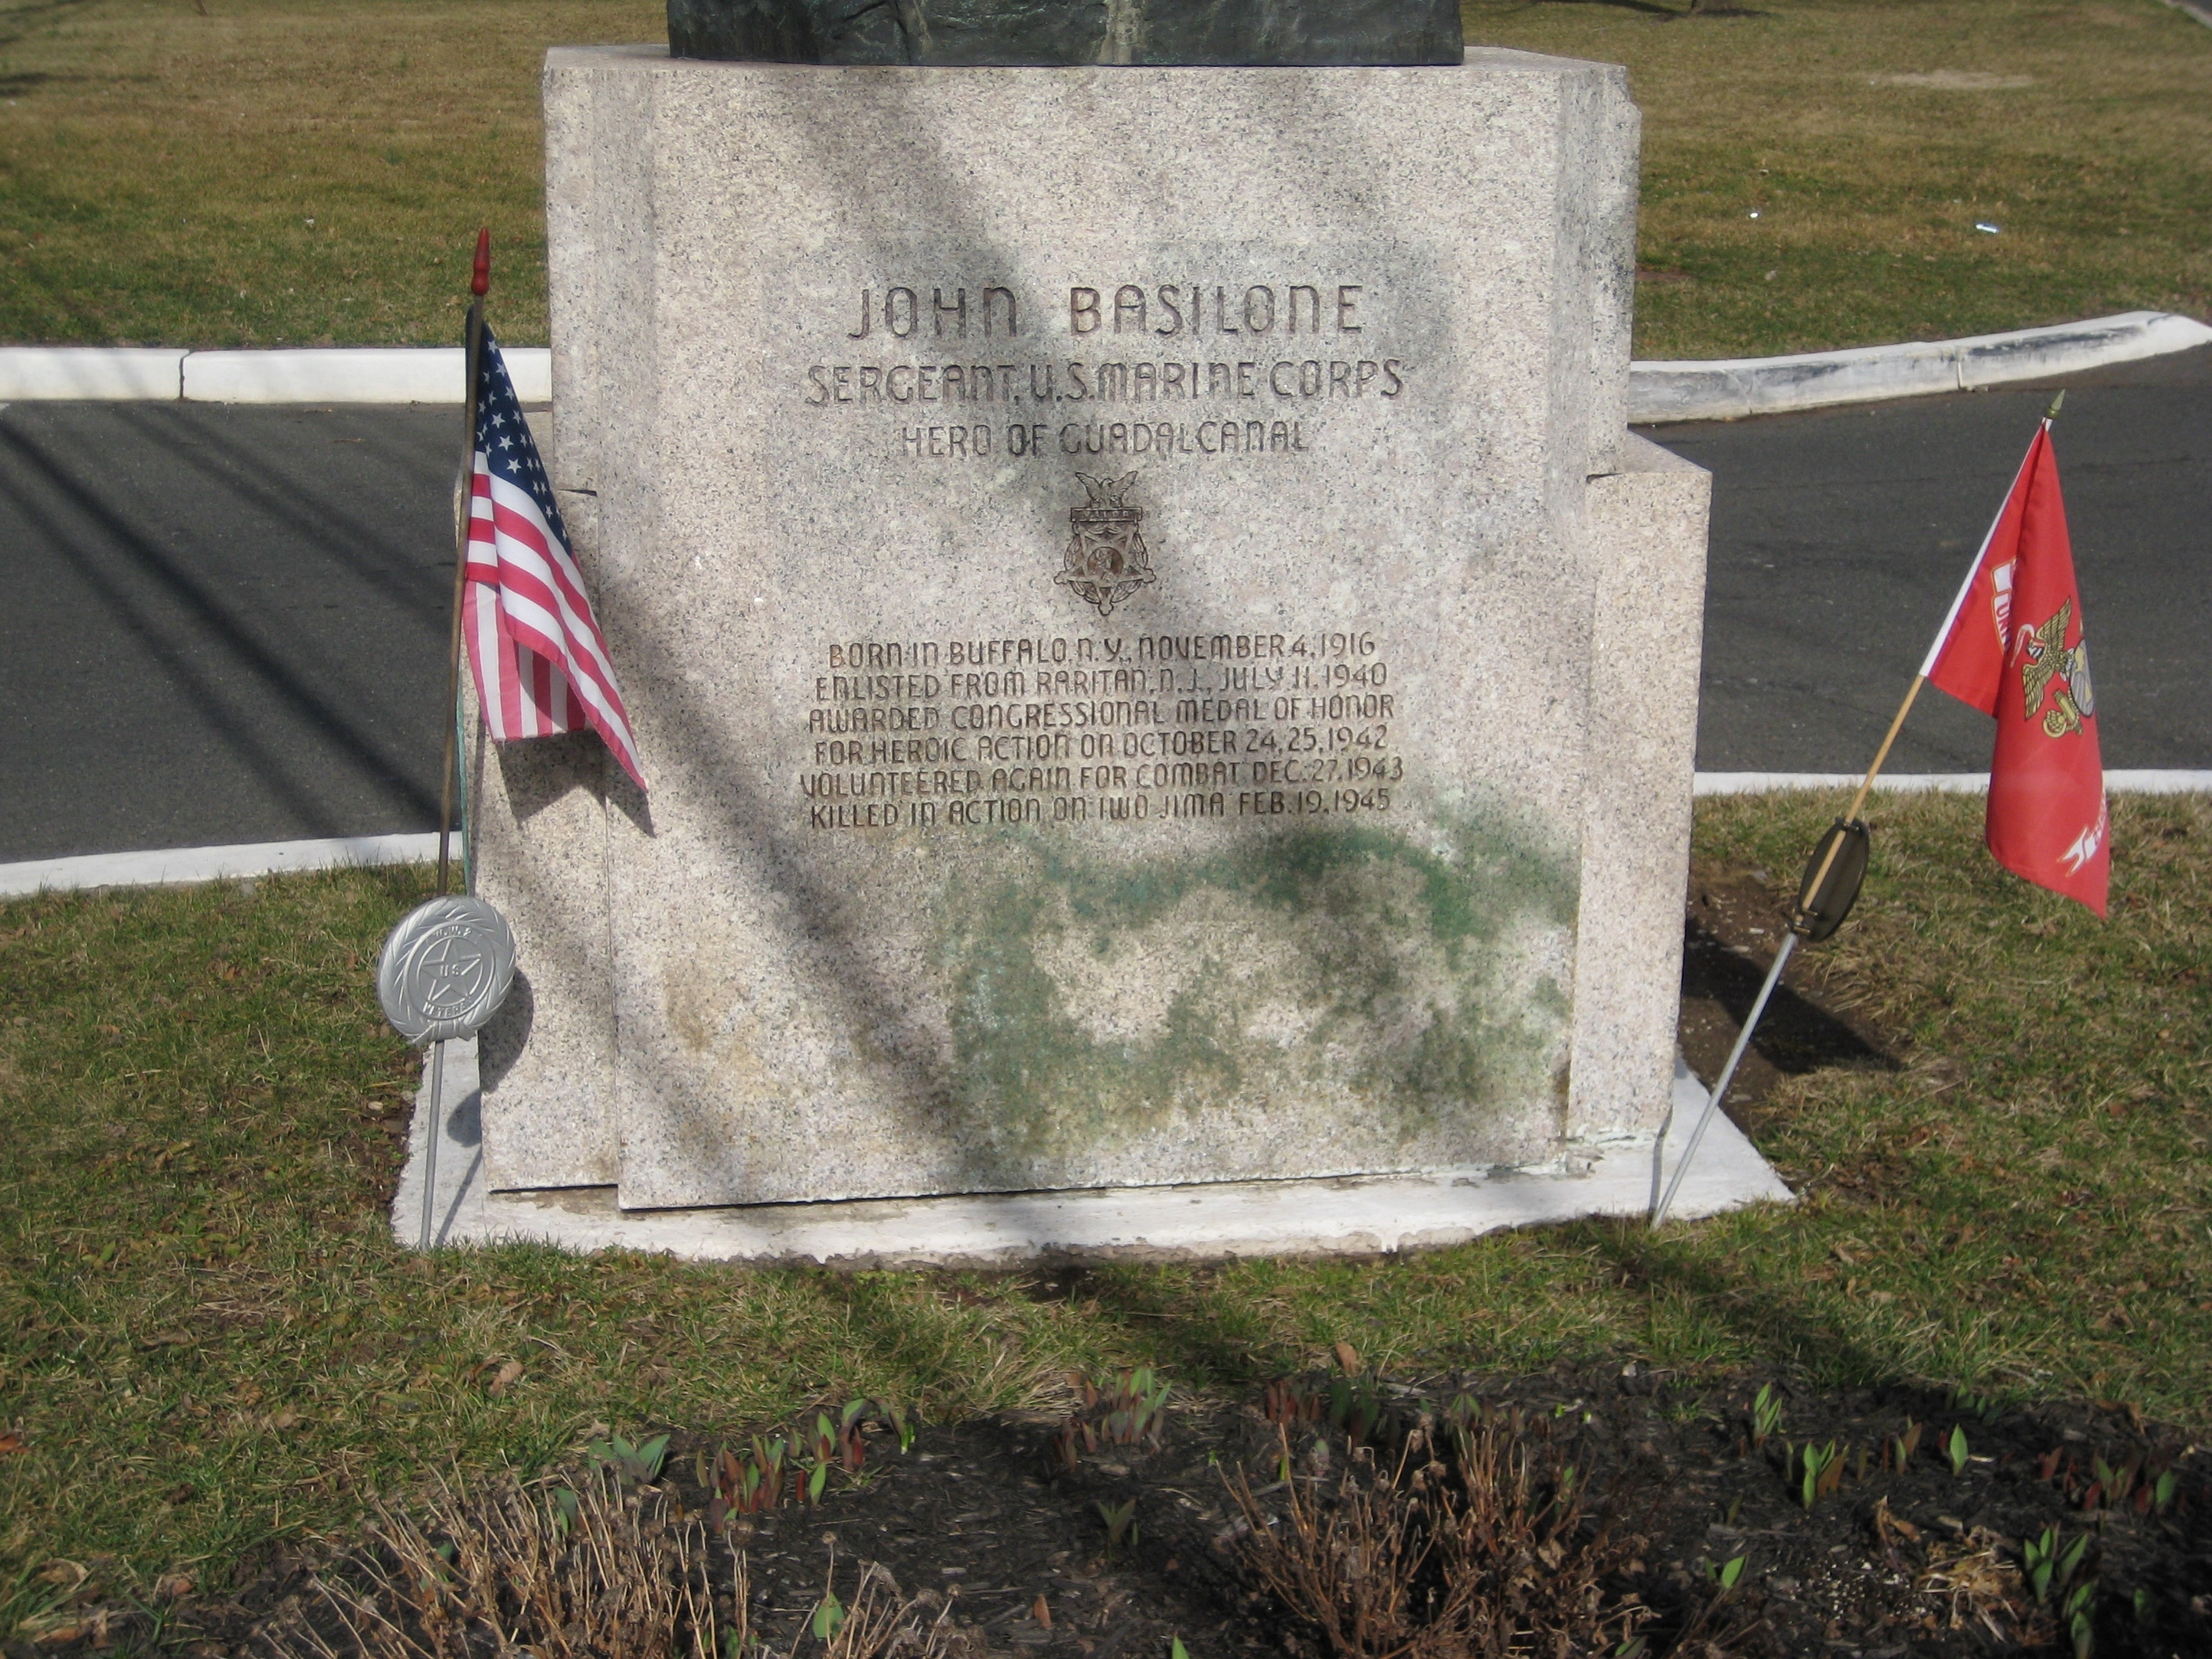 John Basilone Monument - Front Inscription